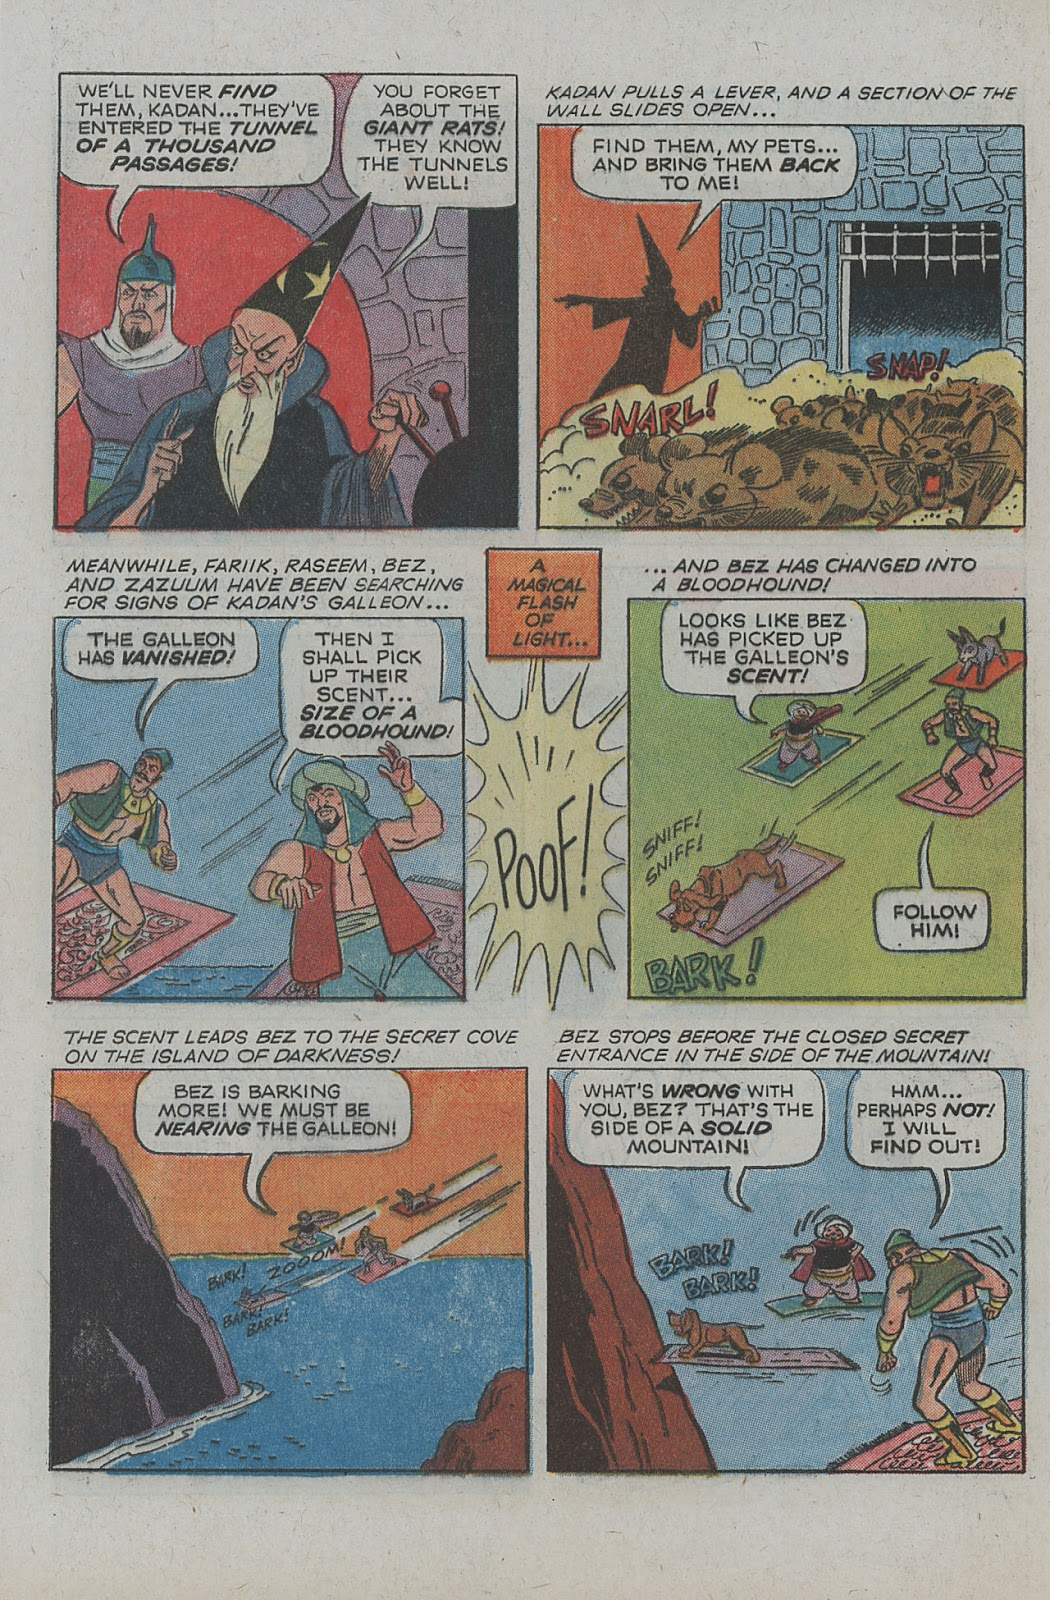 The Bronze Age Of Blogs June 2015 Hi Hansithe Codes Do Point To An Electrical Problem With Transfer Theres Elements Ernie Colon In Artwork Here Though Im Sure Its Not Him But Wouldnt A Full Scale Arabian Knights By Ernieve Been Great